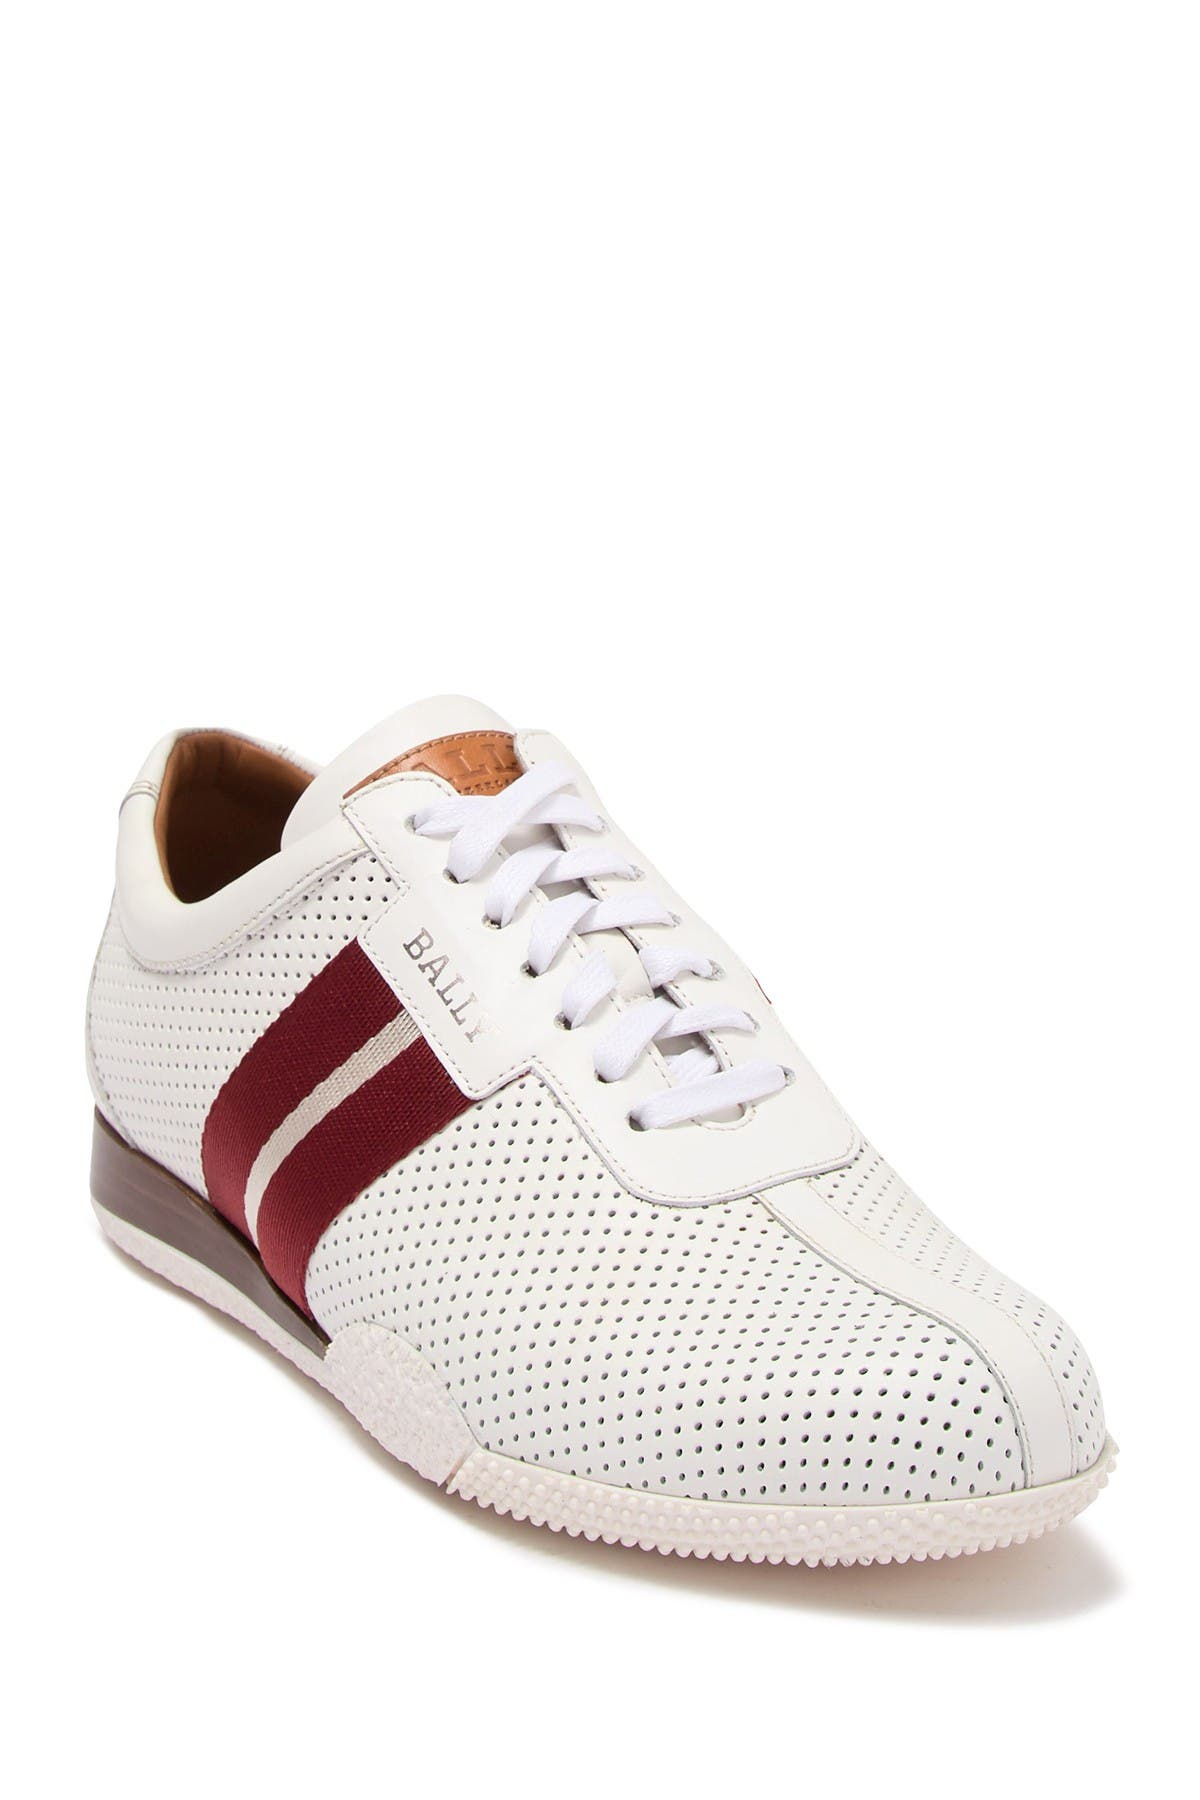 BALLY | Leather Perforated Sneaker